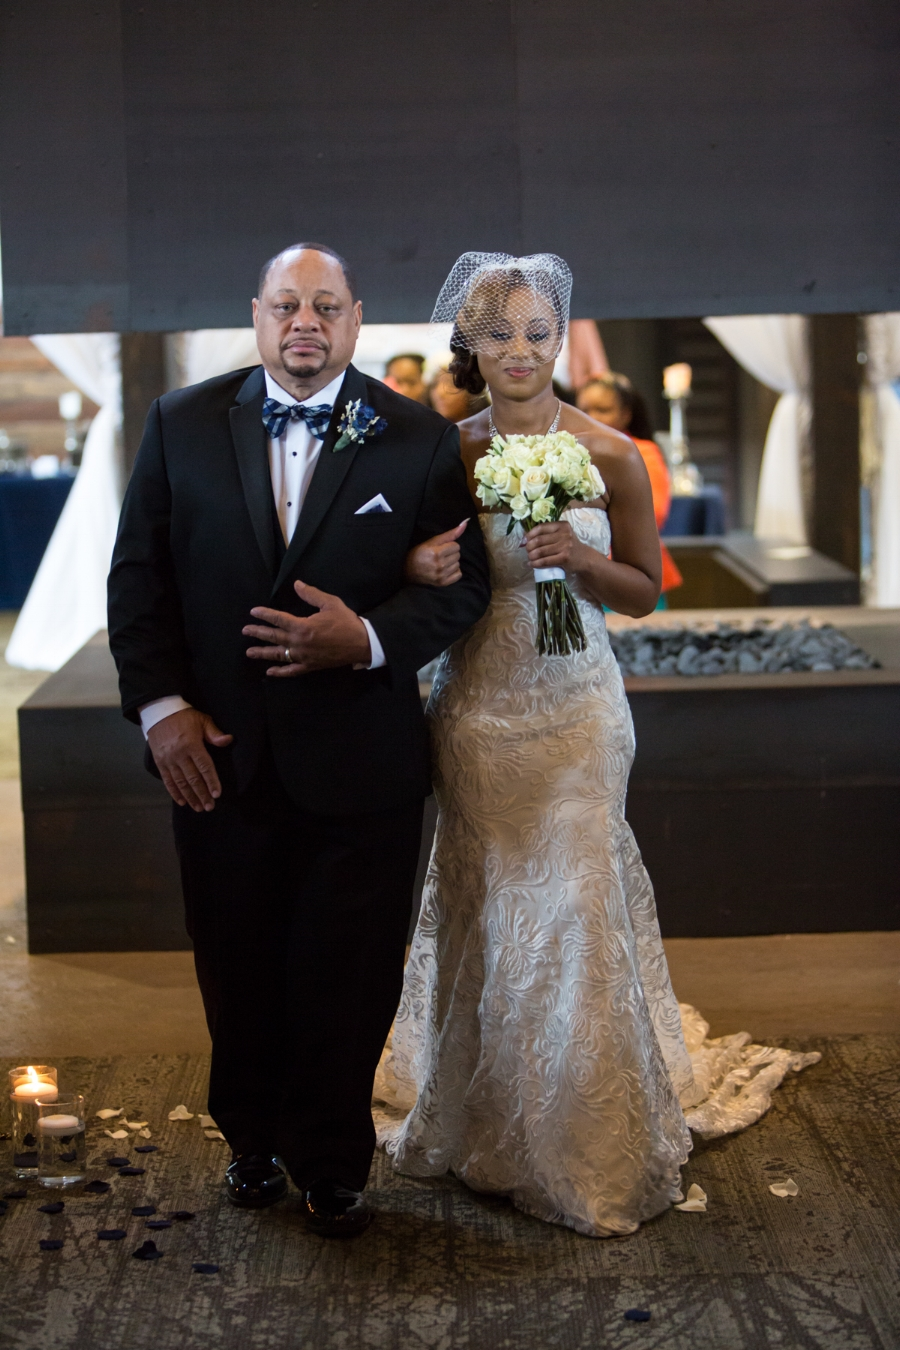 Amber's father walked her down the isle.